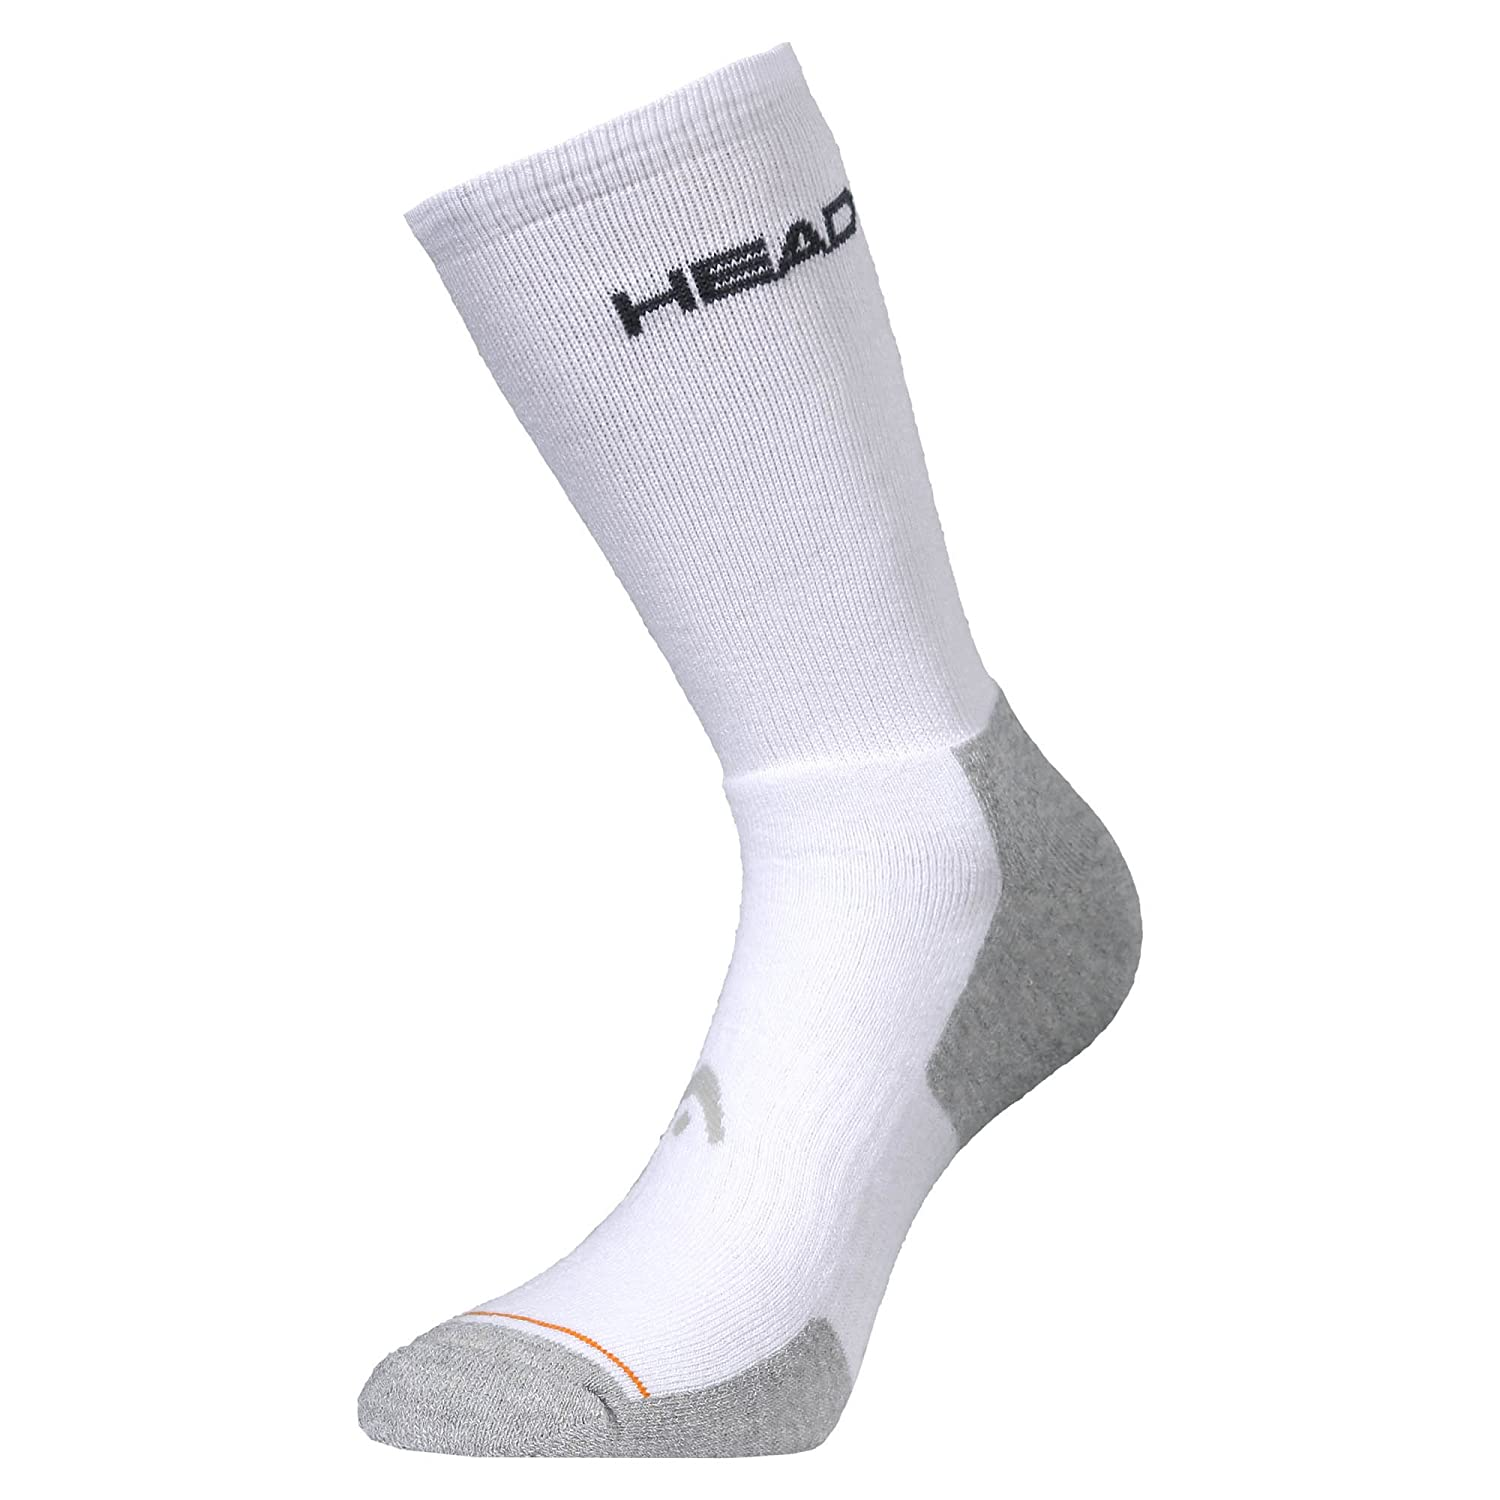 Head Crew Athletes Tenis Calcetines, Hombre, Socks Tennis ...